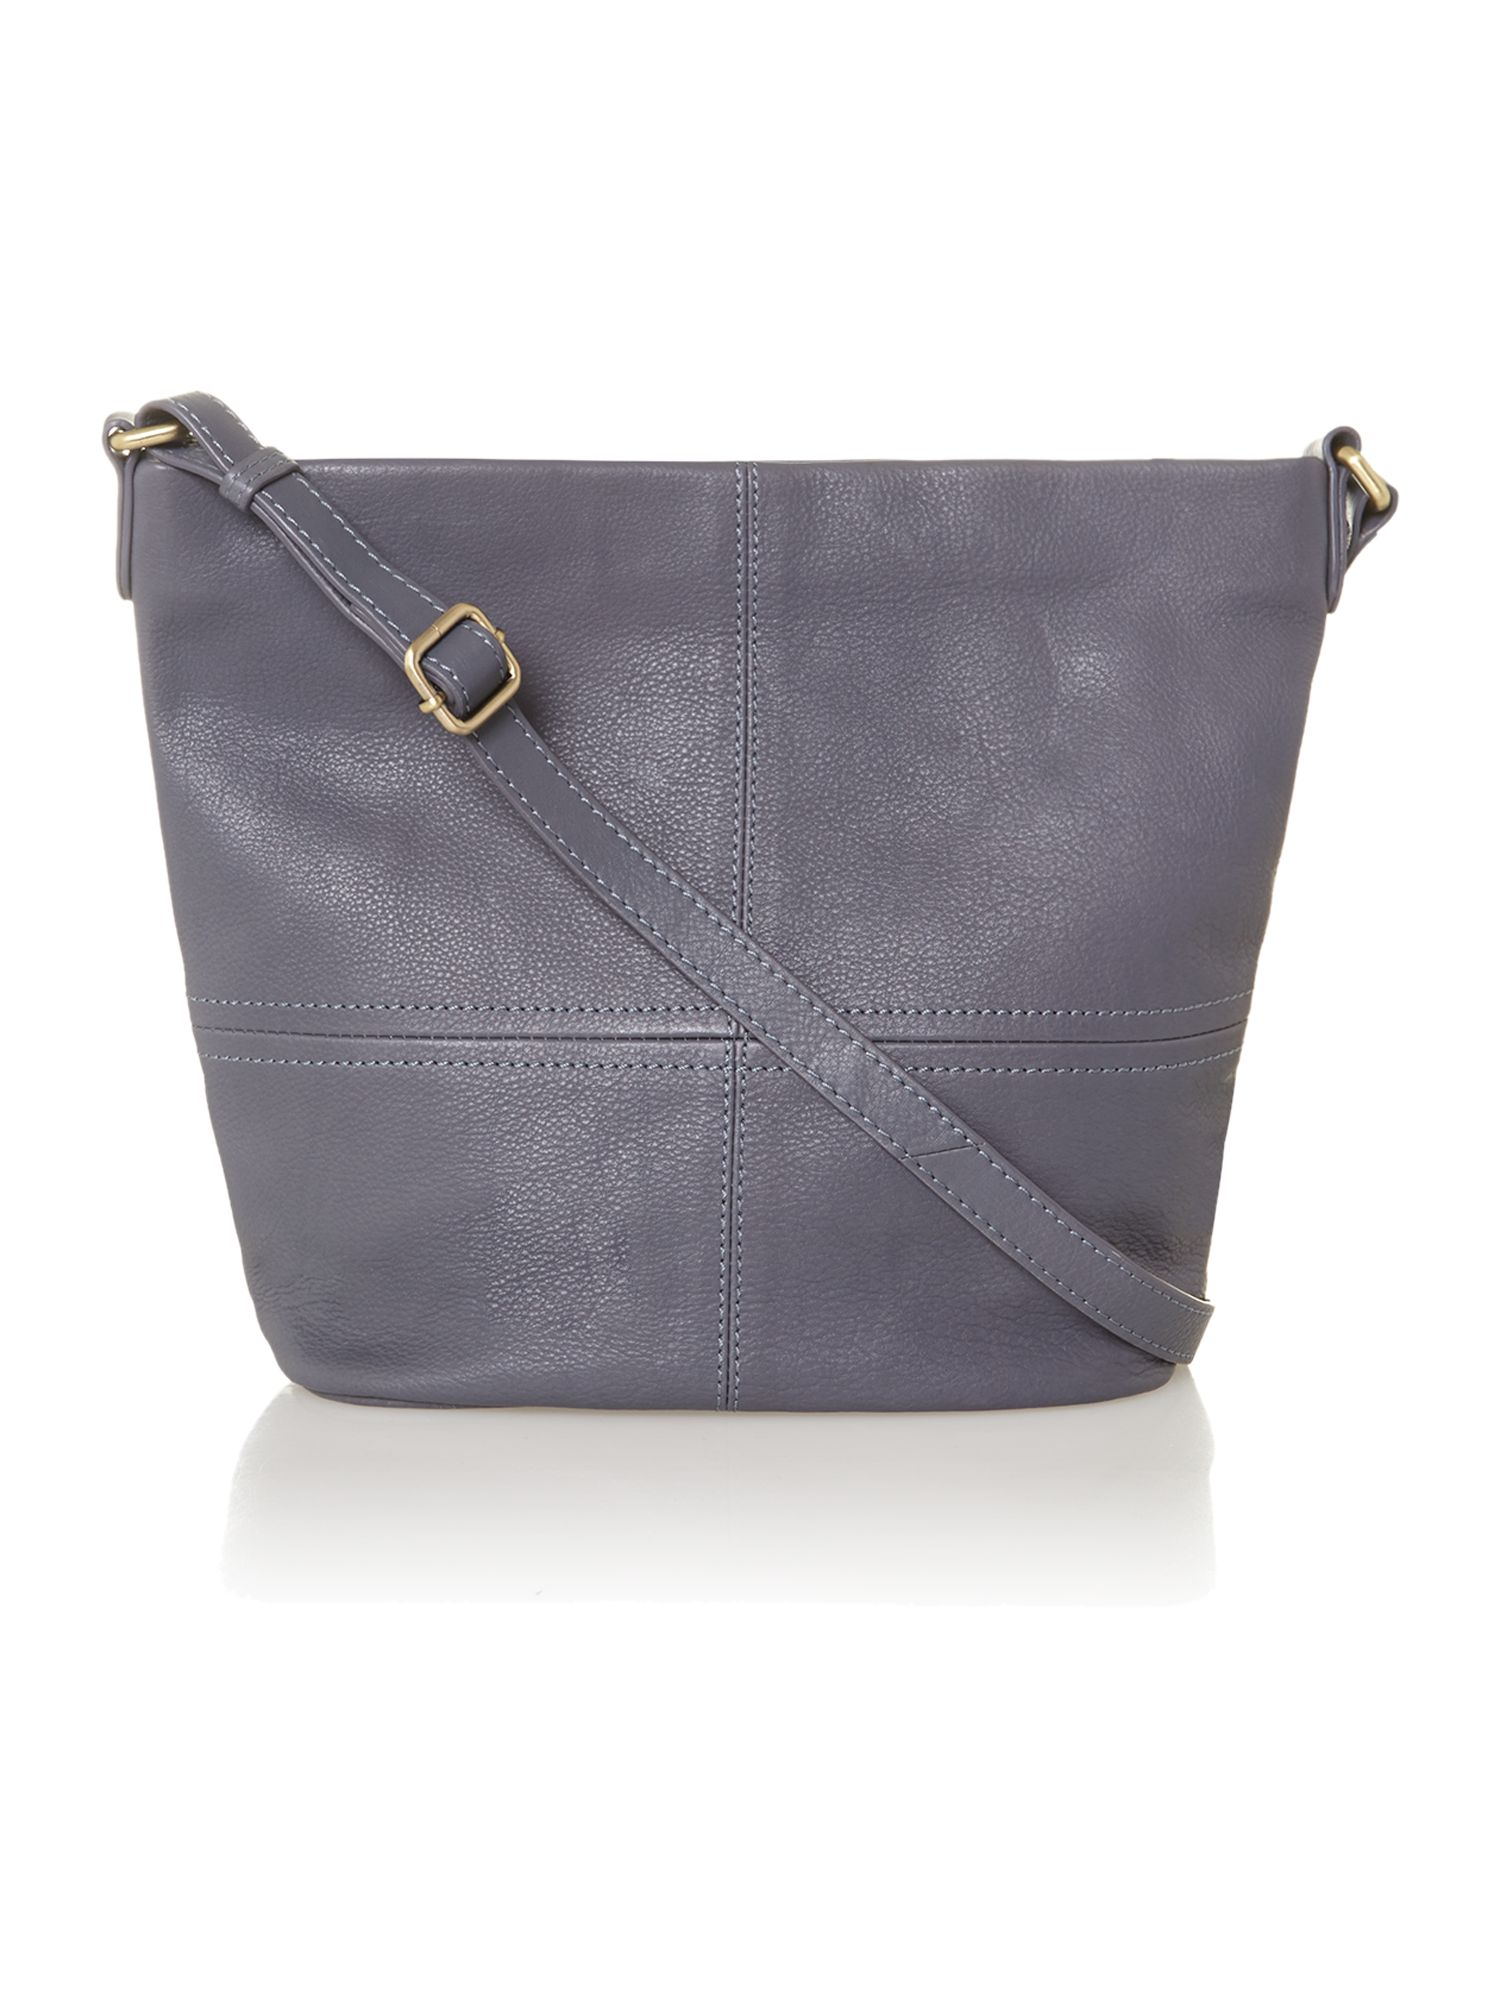 Jessie cross body bag